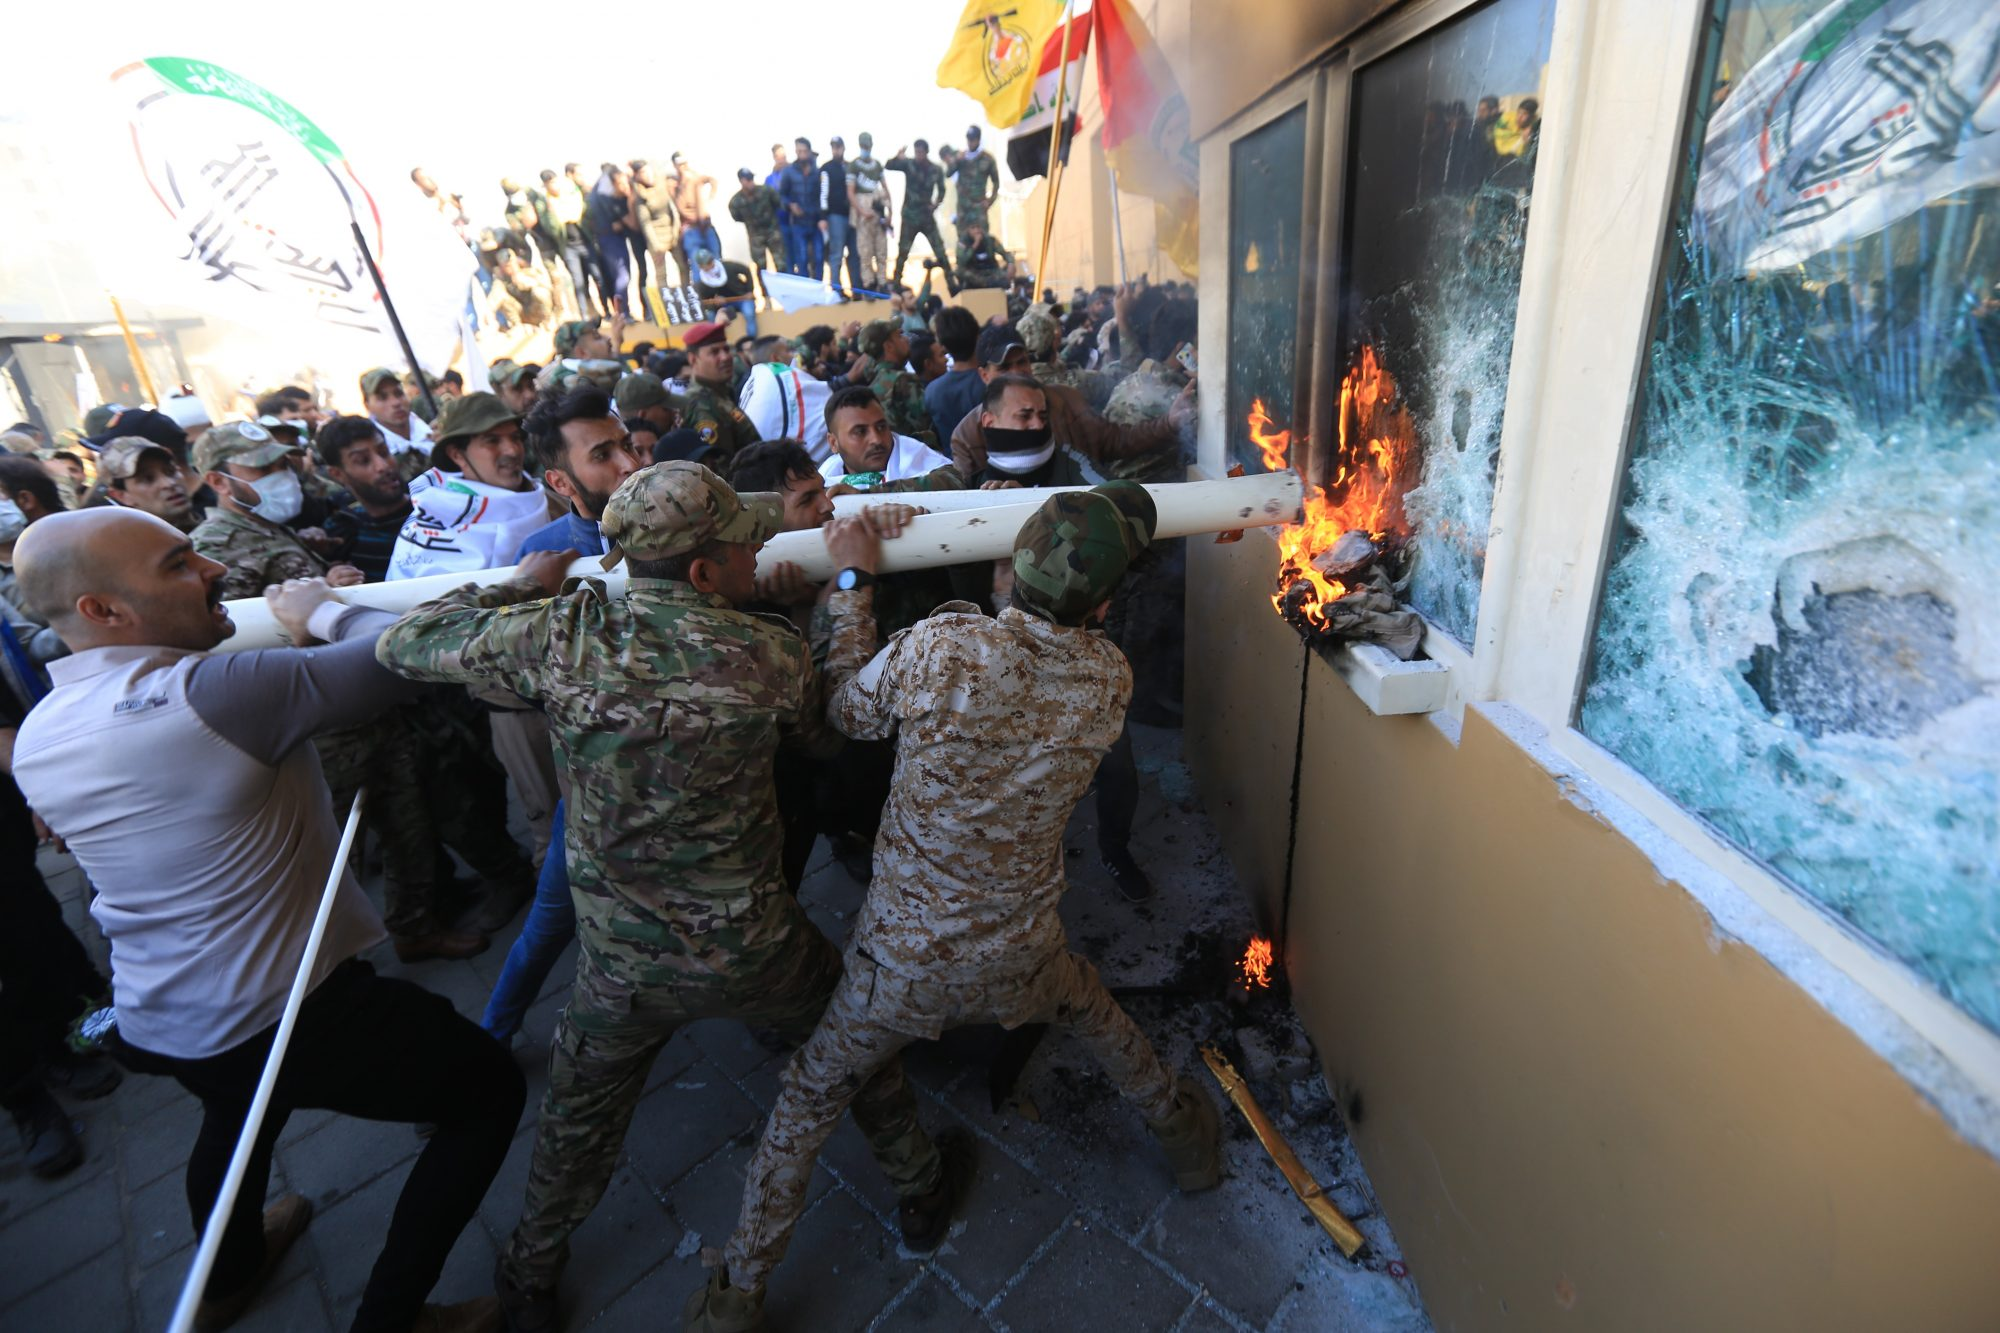 GettyImages 1191101521 2000x1333 - President Trump blames Iran as hundreds storm US embassy in Baghdad – Channel 4 News